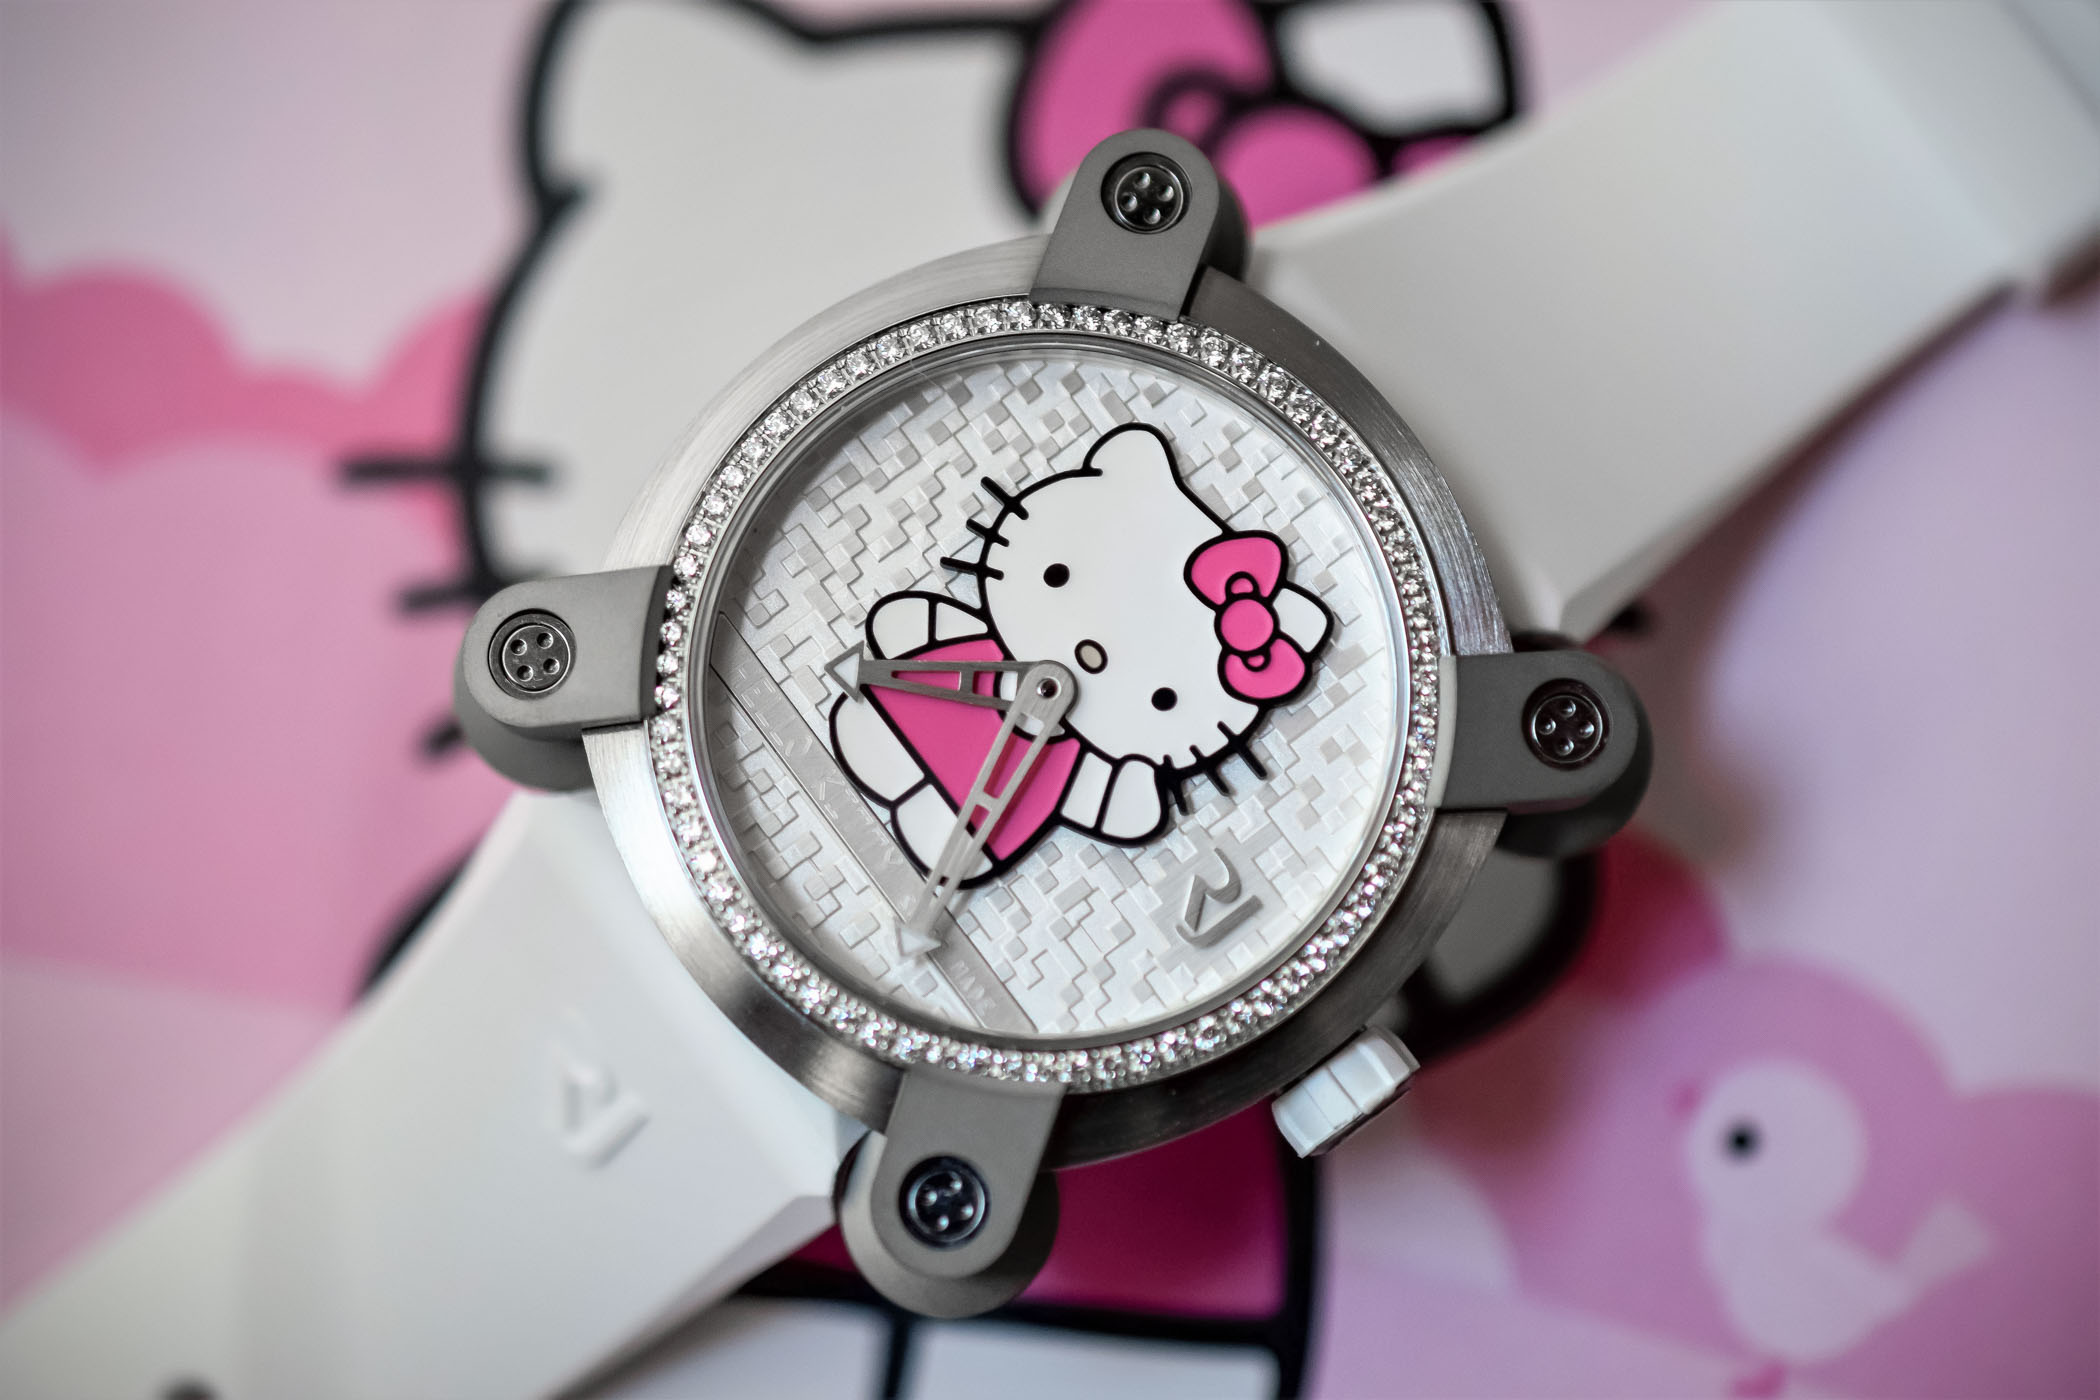 Introducing the rj romain jerome rj hello kitty live pics